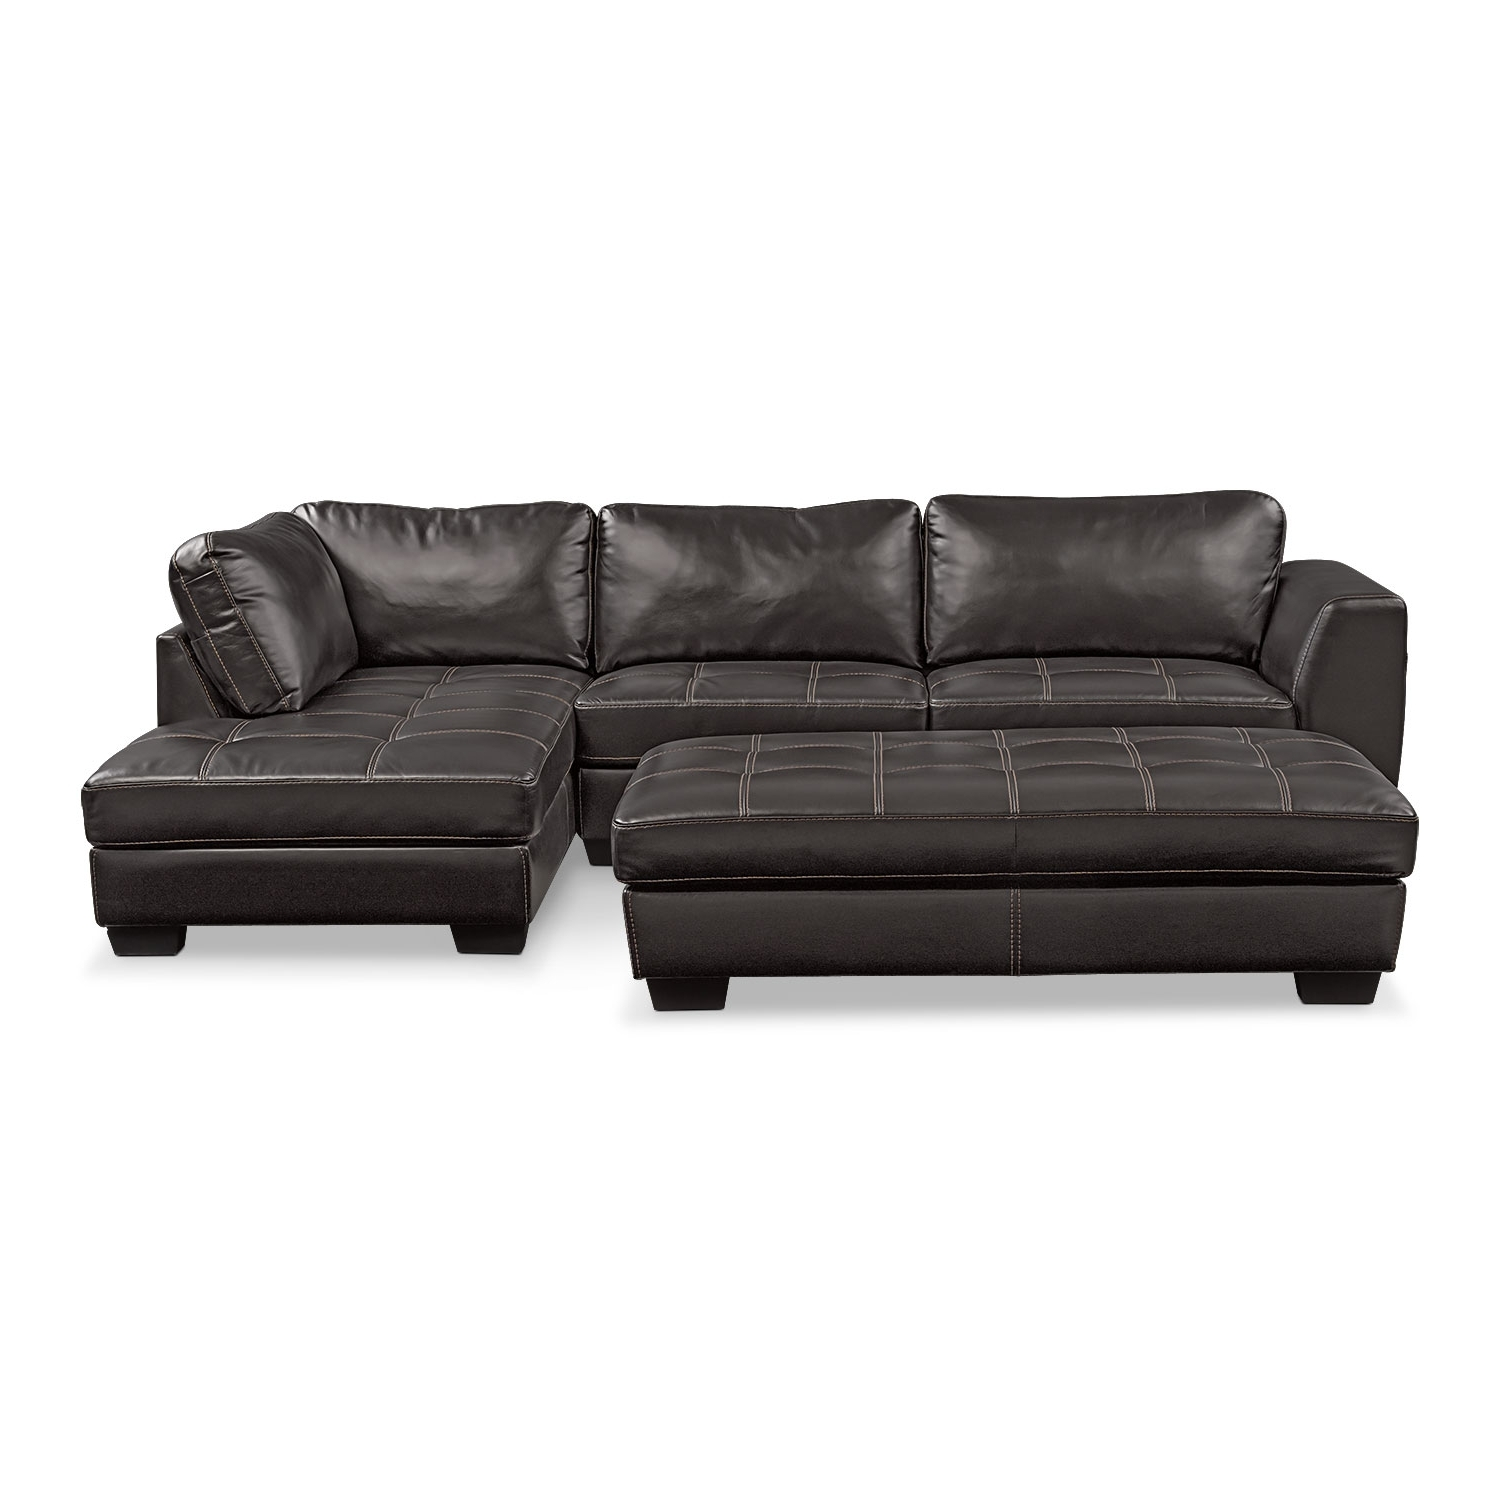 Most Recent Santana 2 Piece Sectional With Right Facing Chaise And Cocktail In Sectional Sofas With Chaise And Ottoman (View 9 of 20)